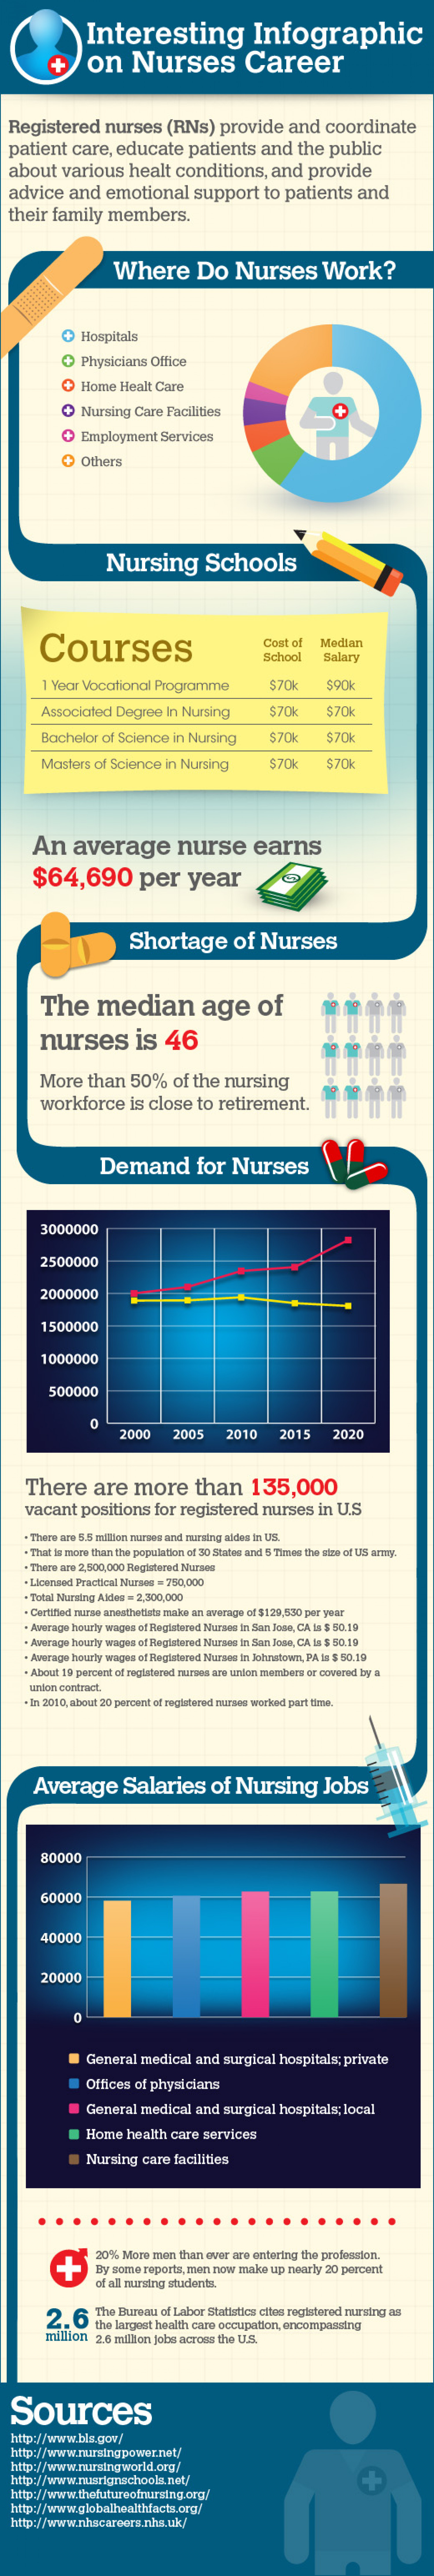 Interesting Infographic On Nursing Career Infographic